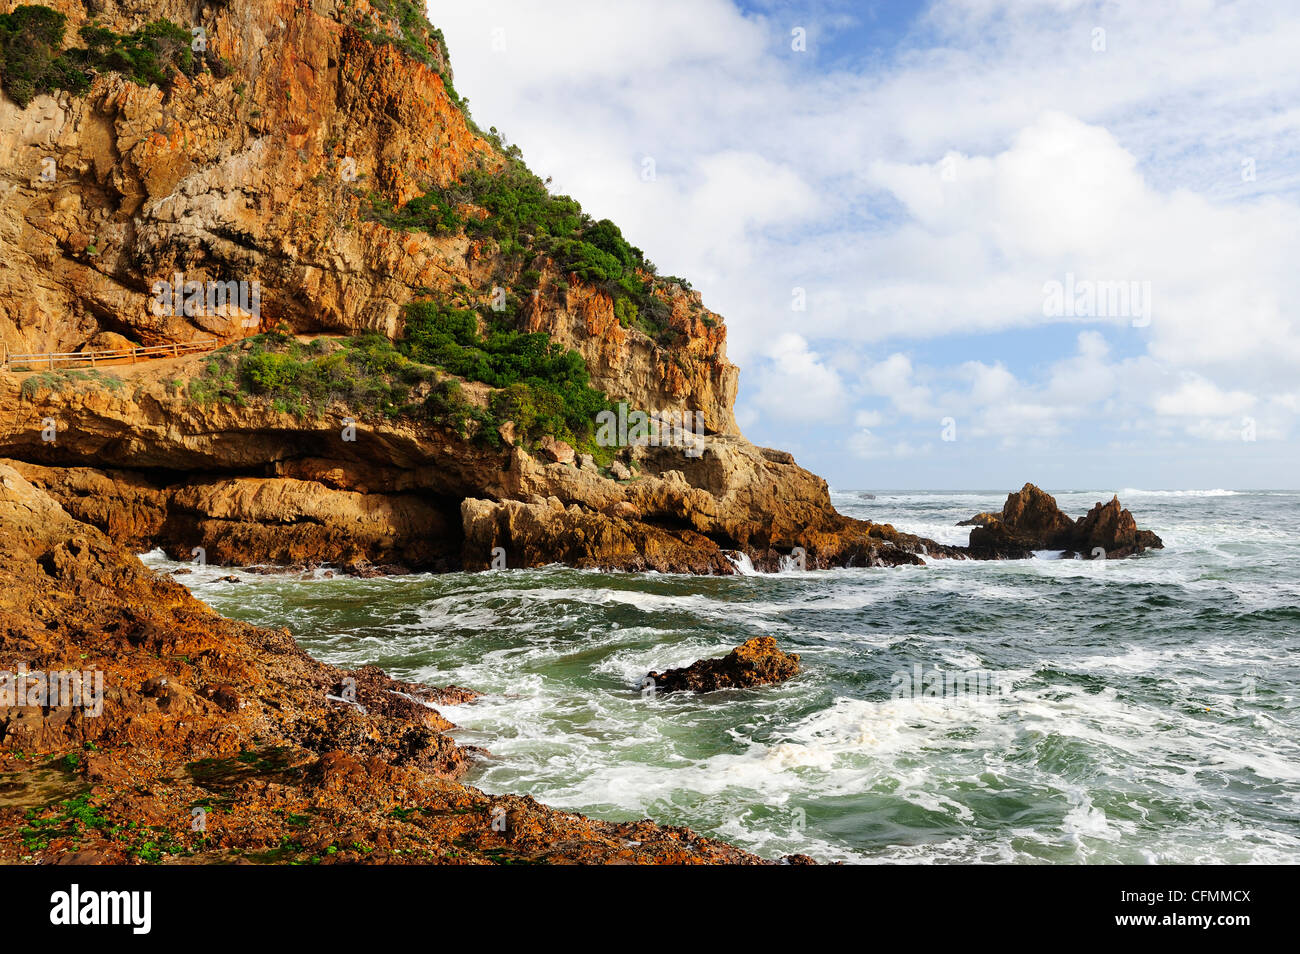 Pleasant The Heads At Knysna On The Garden Route Western Cape South  With Excellent Stock Photo  The Heads At Knysna On The Garden Route Western Cape South  Africa With Adorable Bus Timetable Welwyn Garden City Also North Facing Garden Sun In Addition Hanging Garden Of Babylon And Welwyn Garden City United Kingdom As Well As Kensington Roof Gardens Flamingos Additionally Best Price Garden Sheds From Alamycom With   Excellent The Heads At Knysna On The Garden Route Western Cape South  With Adorable Stock Photo  The Heads At Knysna On The Garden Route Western Cape South  Africa And Pleasant Bus Timetable Welwyn Garden City Also North Facing Garden Sun In Addition Hanging Garden Of Babylon From Alamycom